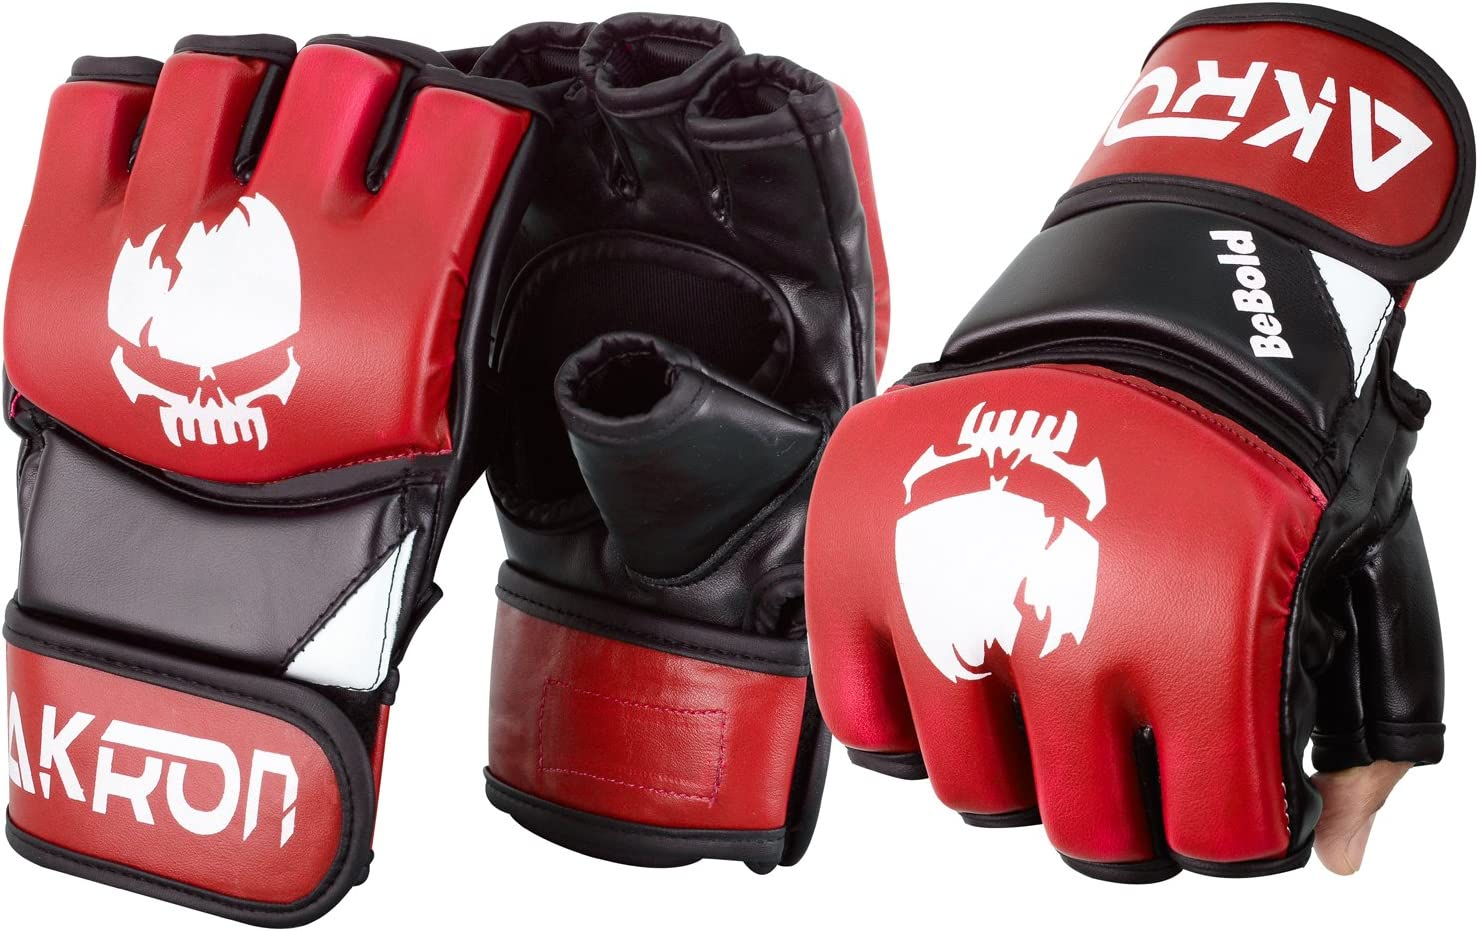 Akron UFC 4 years warranty Grappling Cage Fight Gloves Nashville-Davidson Mall Training Boxing Punchi MMA